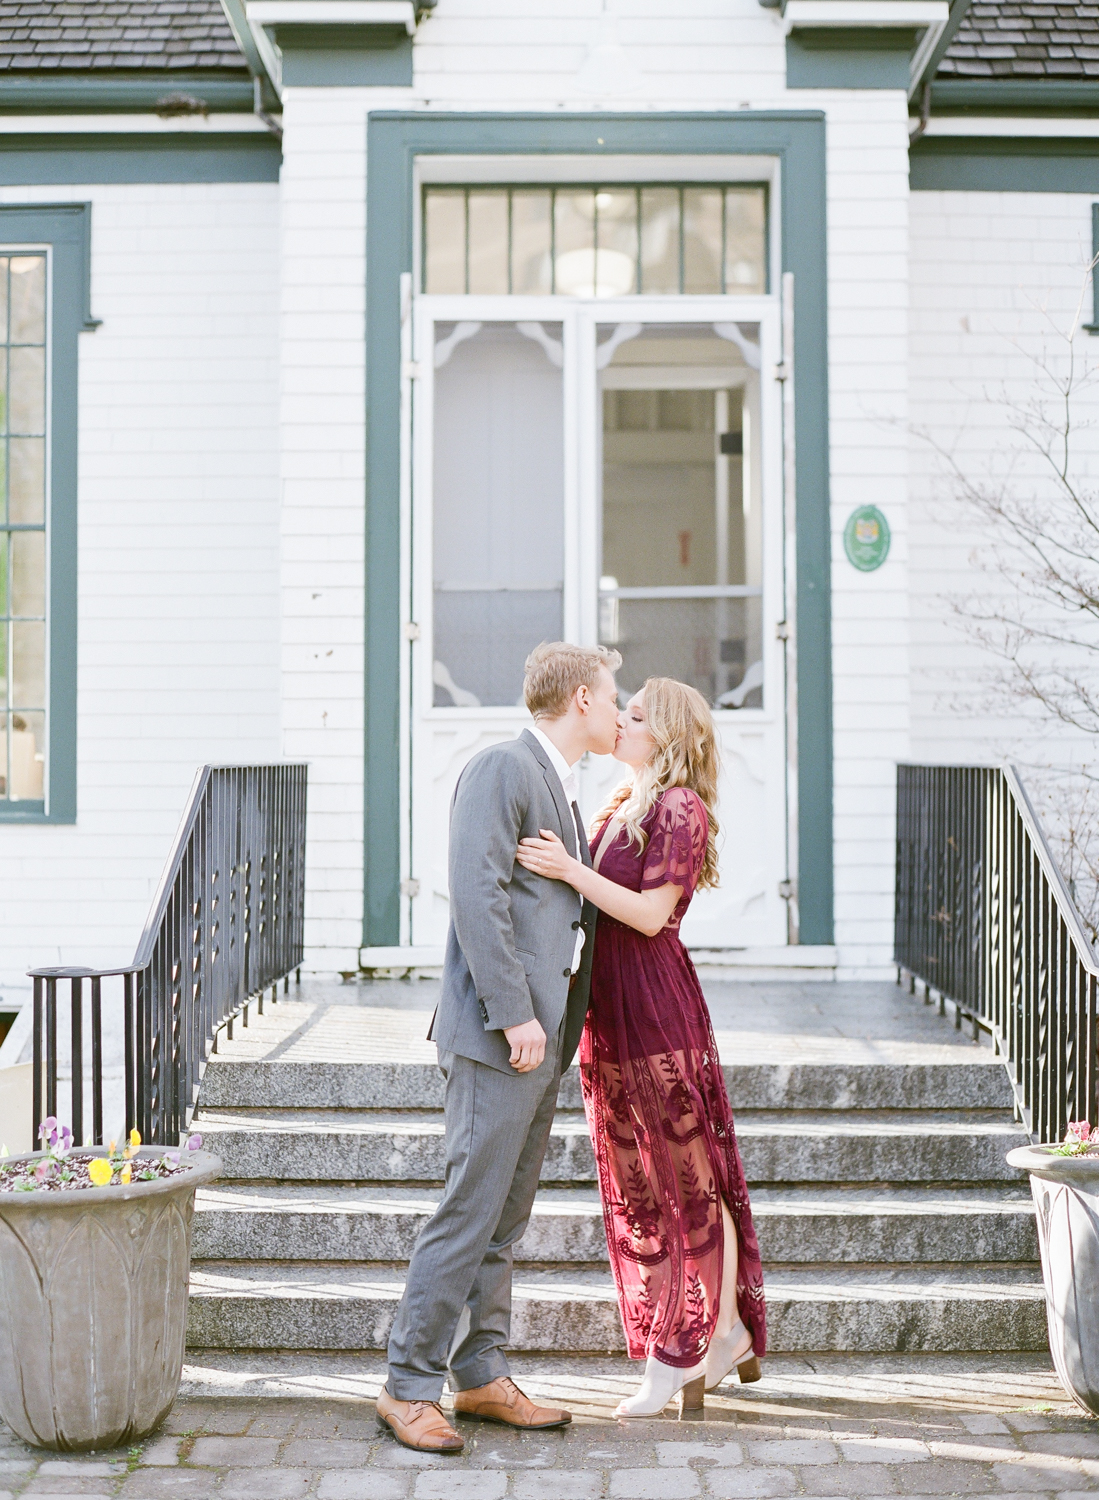 Jacqueline Anne Photography - Amanda and Brent-89.jpg